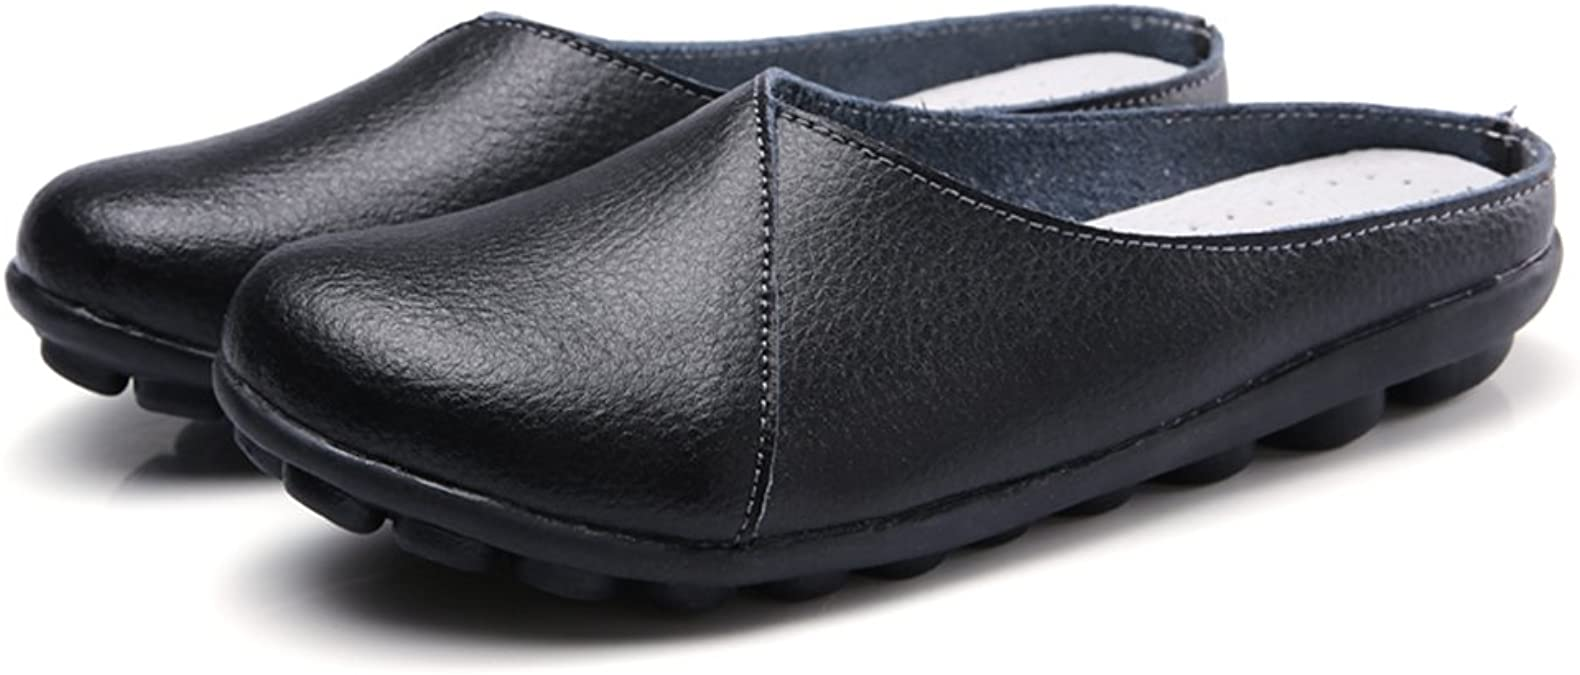 MAIERNISI JESSI Womens Fashion Genuine Leather Loafers Casual Slip-on Slippers Flat Shoes